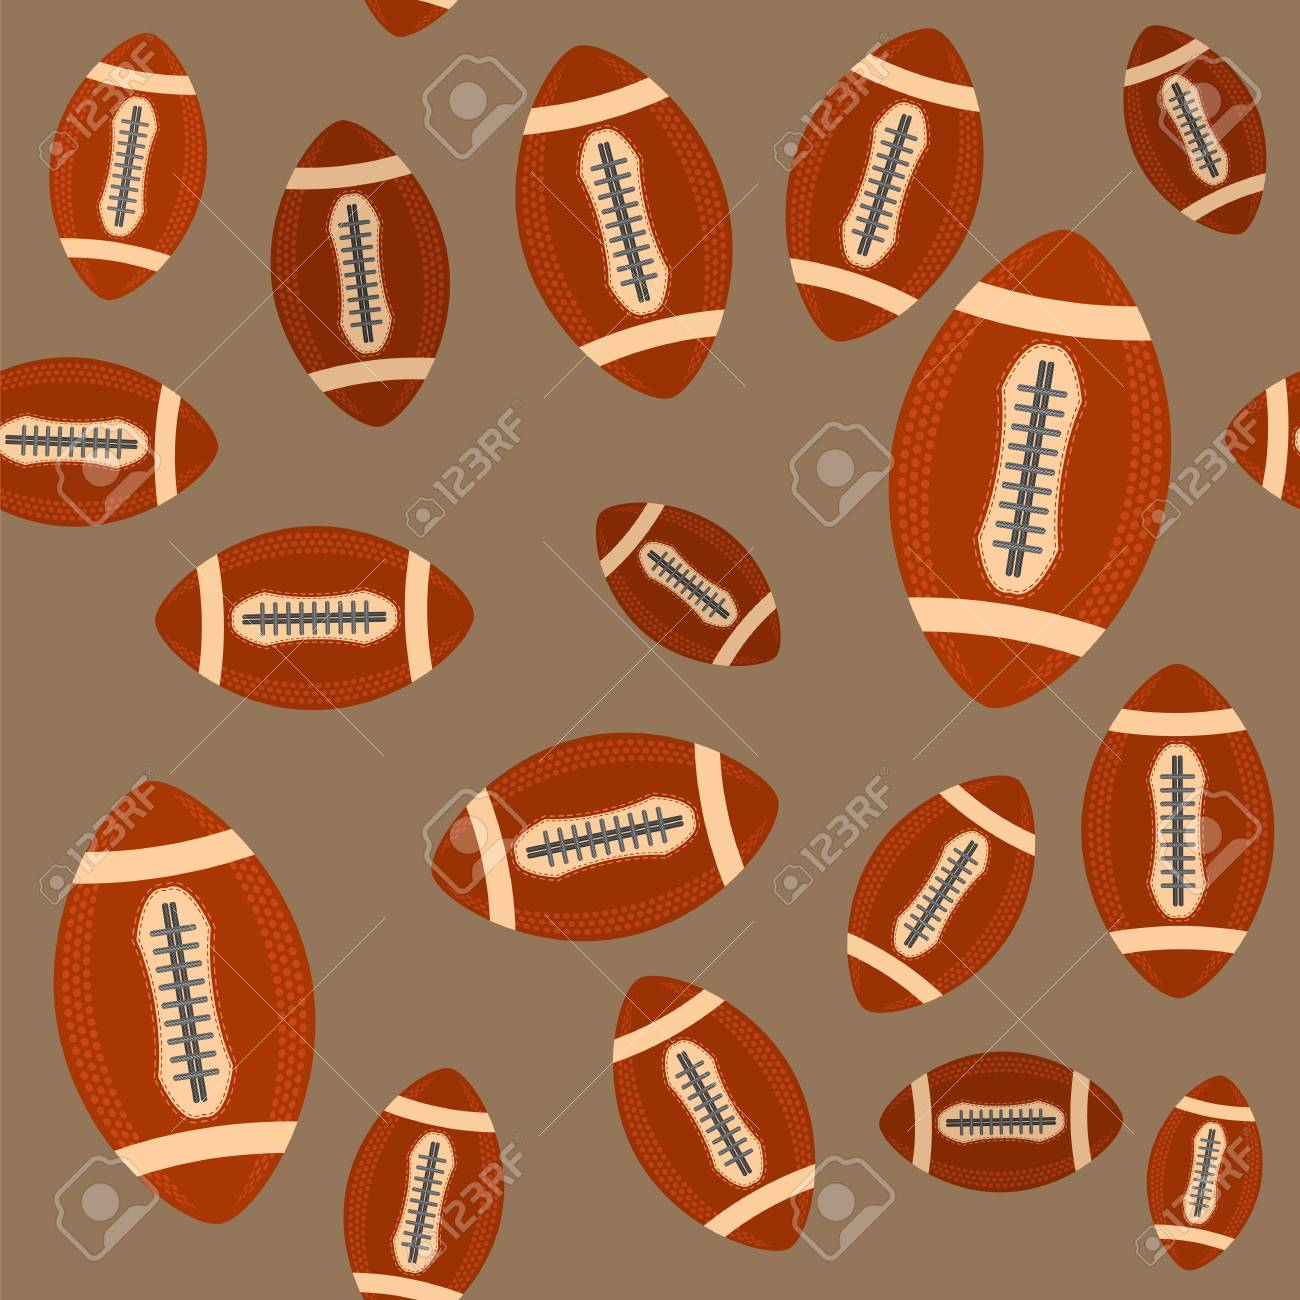 1cb5c50d4729b8 American Football Ball Seamless Pattern Isolated on Brown Background. Rugby  Sport Icon. Sports Equipment